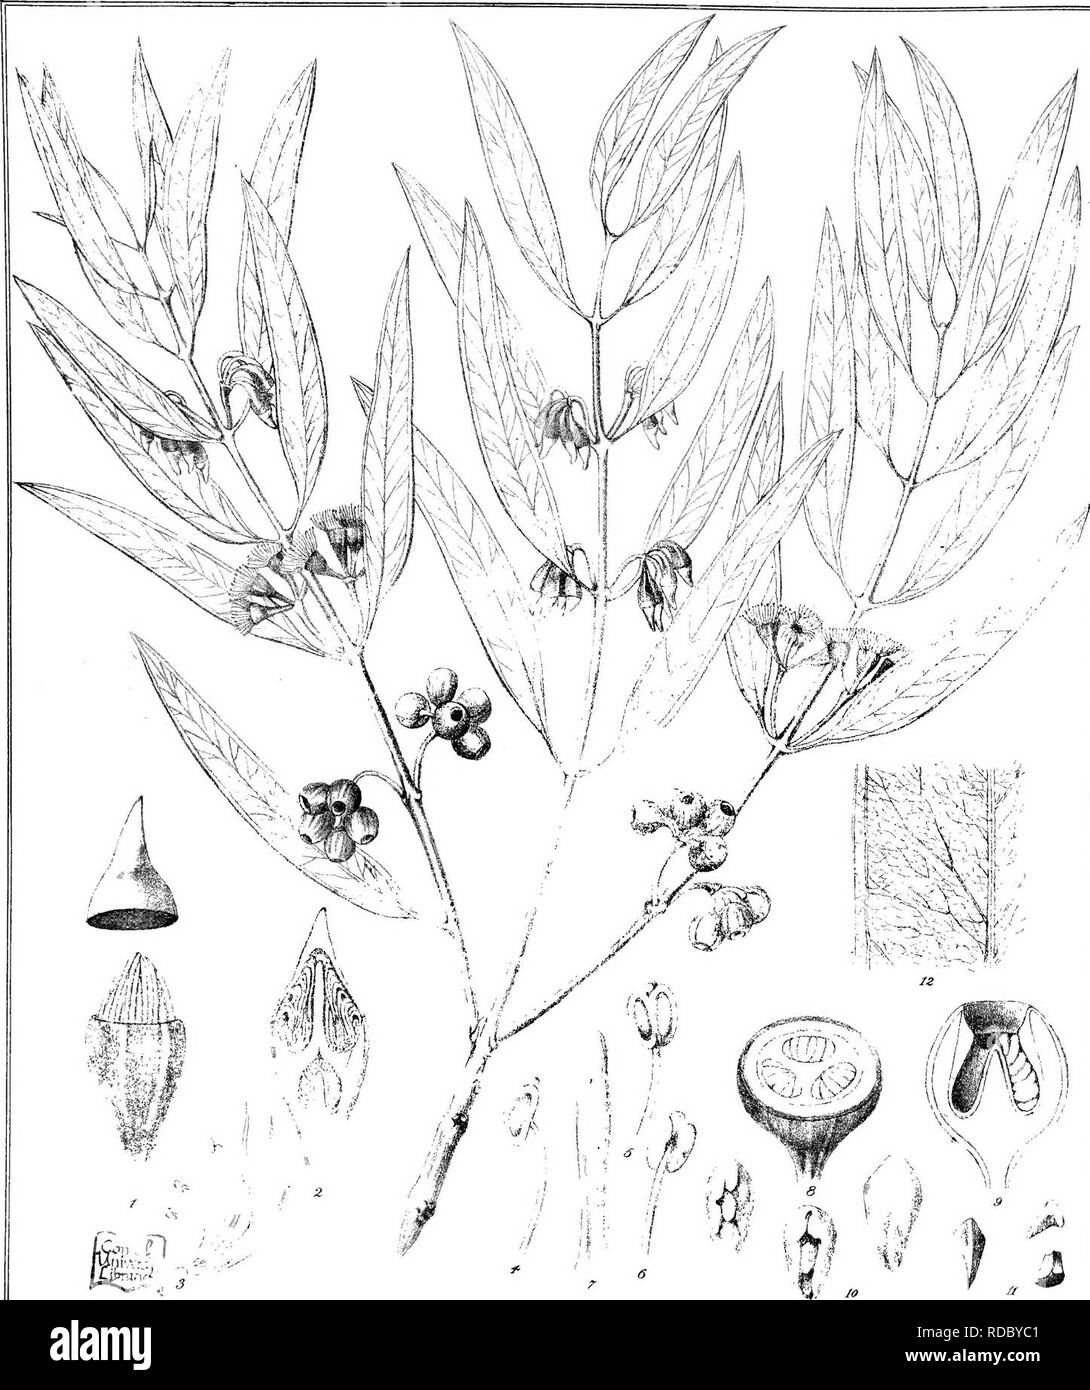 . Eucalyptographia. A descriptive atlas of the eucalypts of Australia and the adjoining islands;. Eucalyptus; Botany. T^d- it C Trosdd aC9 Lilk FirM dirc/il Sleam Lilho GovPrinling Ofdca Mslb ;Si(gii!lf]pteg ®(DmS(DSfl(i)ia. rvM.. Please note that these images are extracted from scanned page images that may have been digitally enhanced for readability - coloration and appearance of these illustrations may not perfectly resemble the original work.. Mueller, Ferdinand von, 1825-1896. Melbourne, J. Ferres, Govt. Print; [etc. ,etc. ] - Stock Image